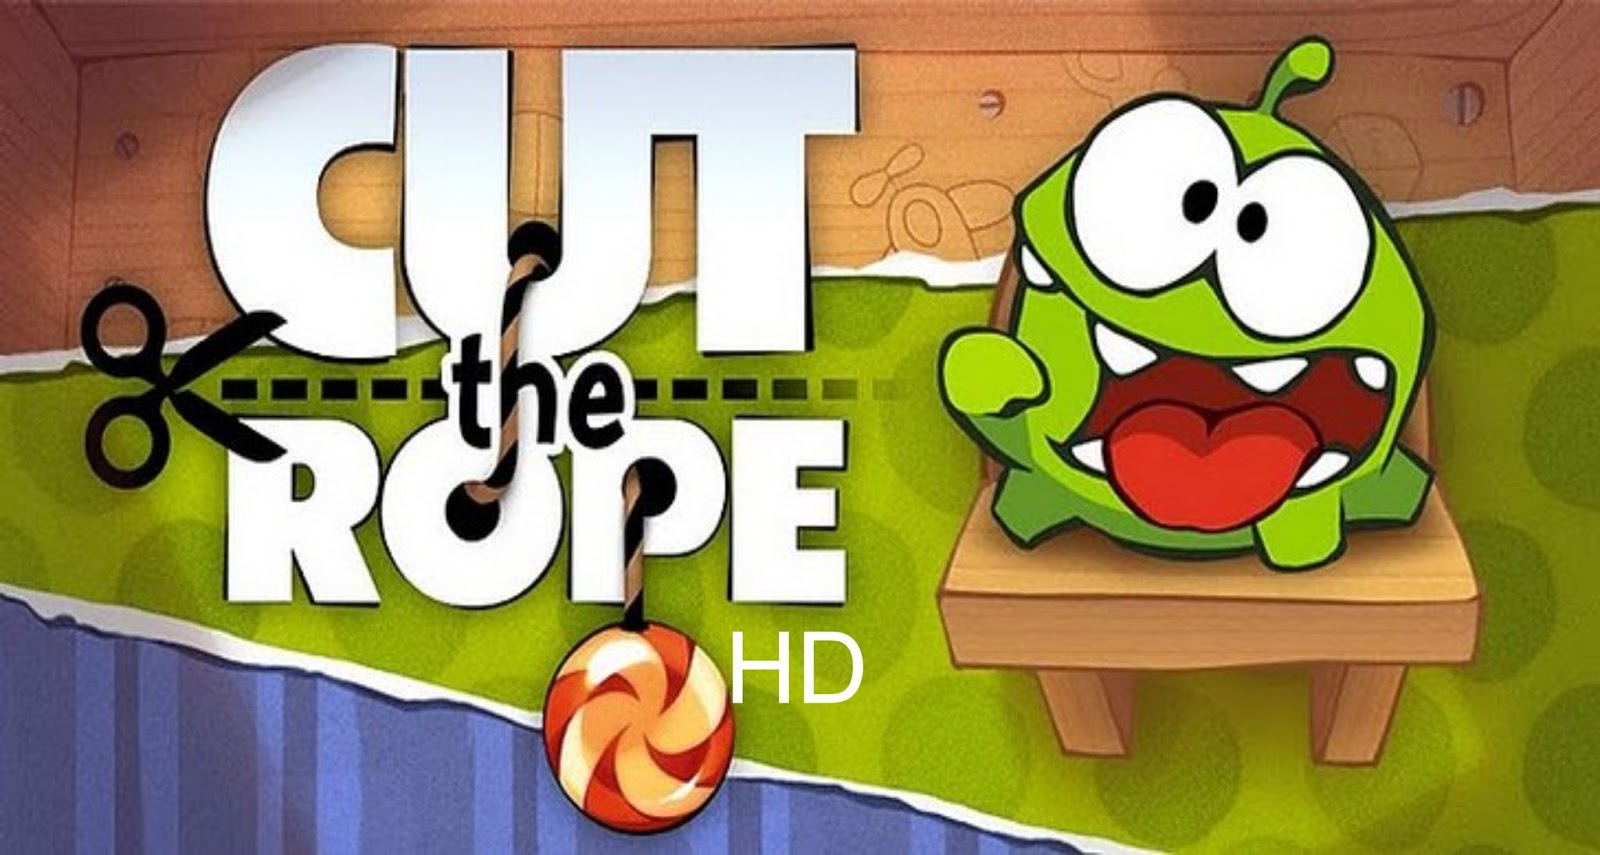 Cut Rope - Apps on Google Play